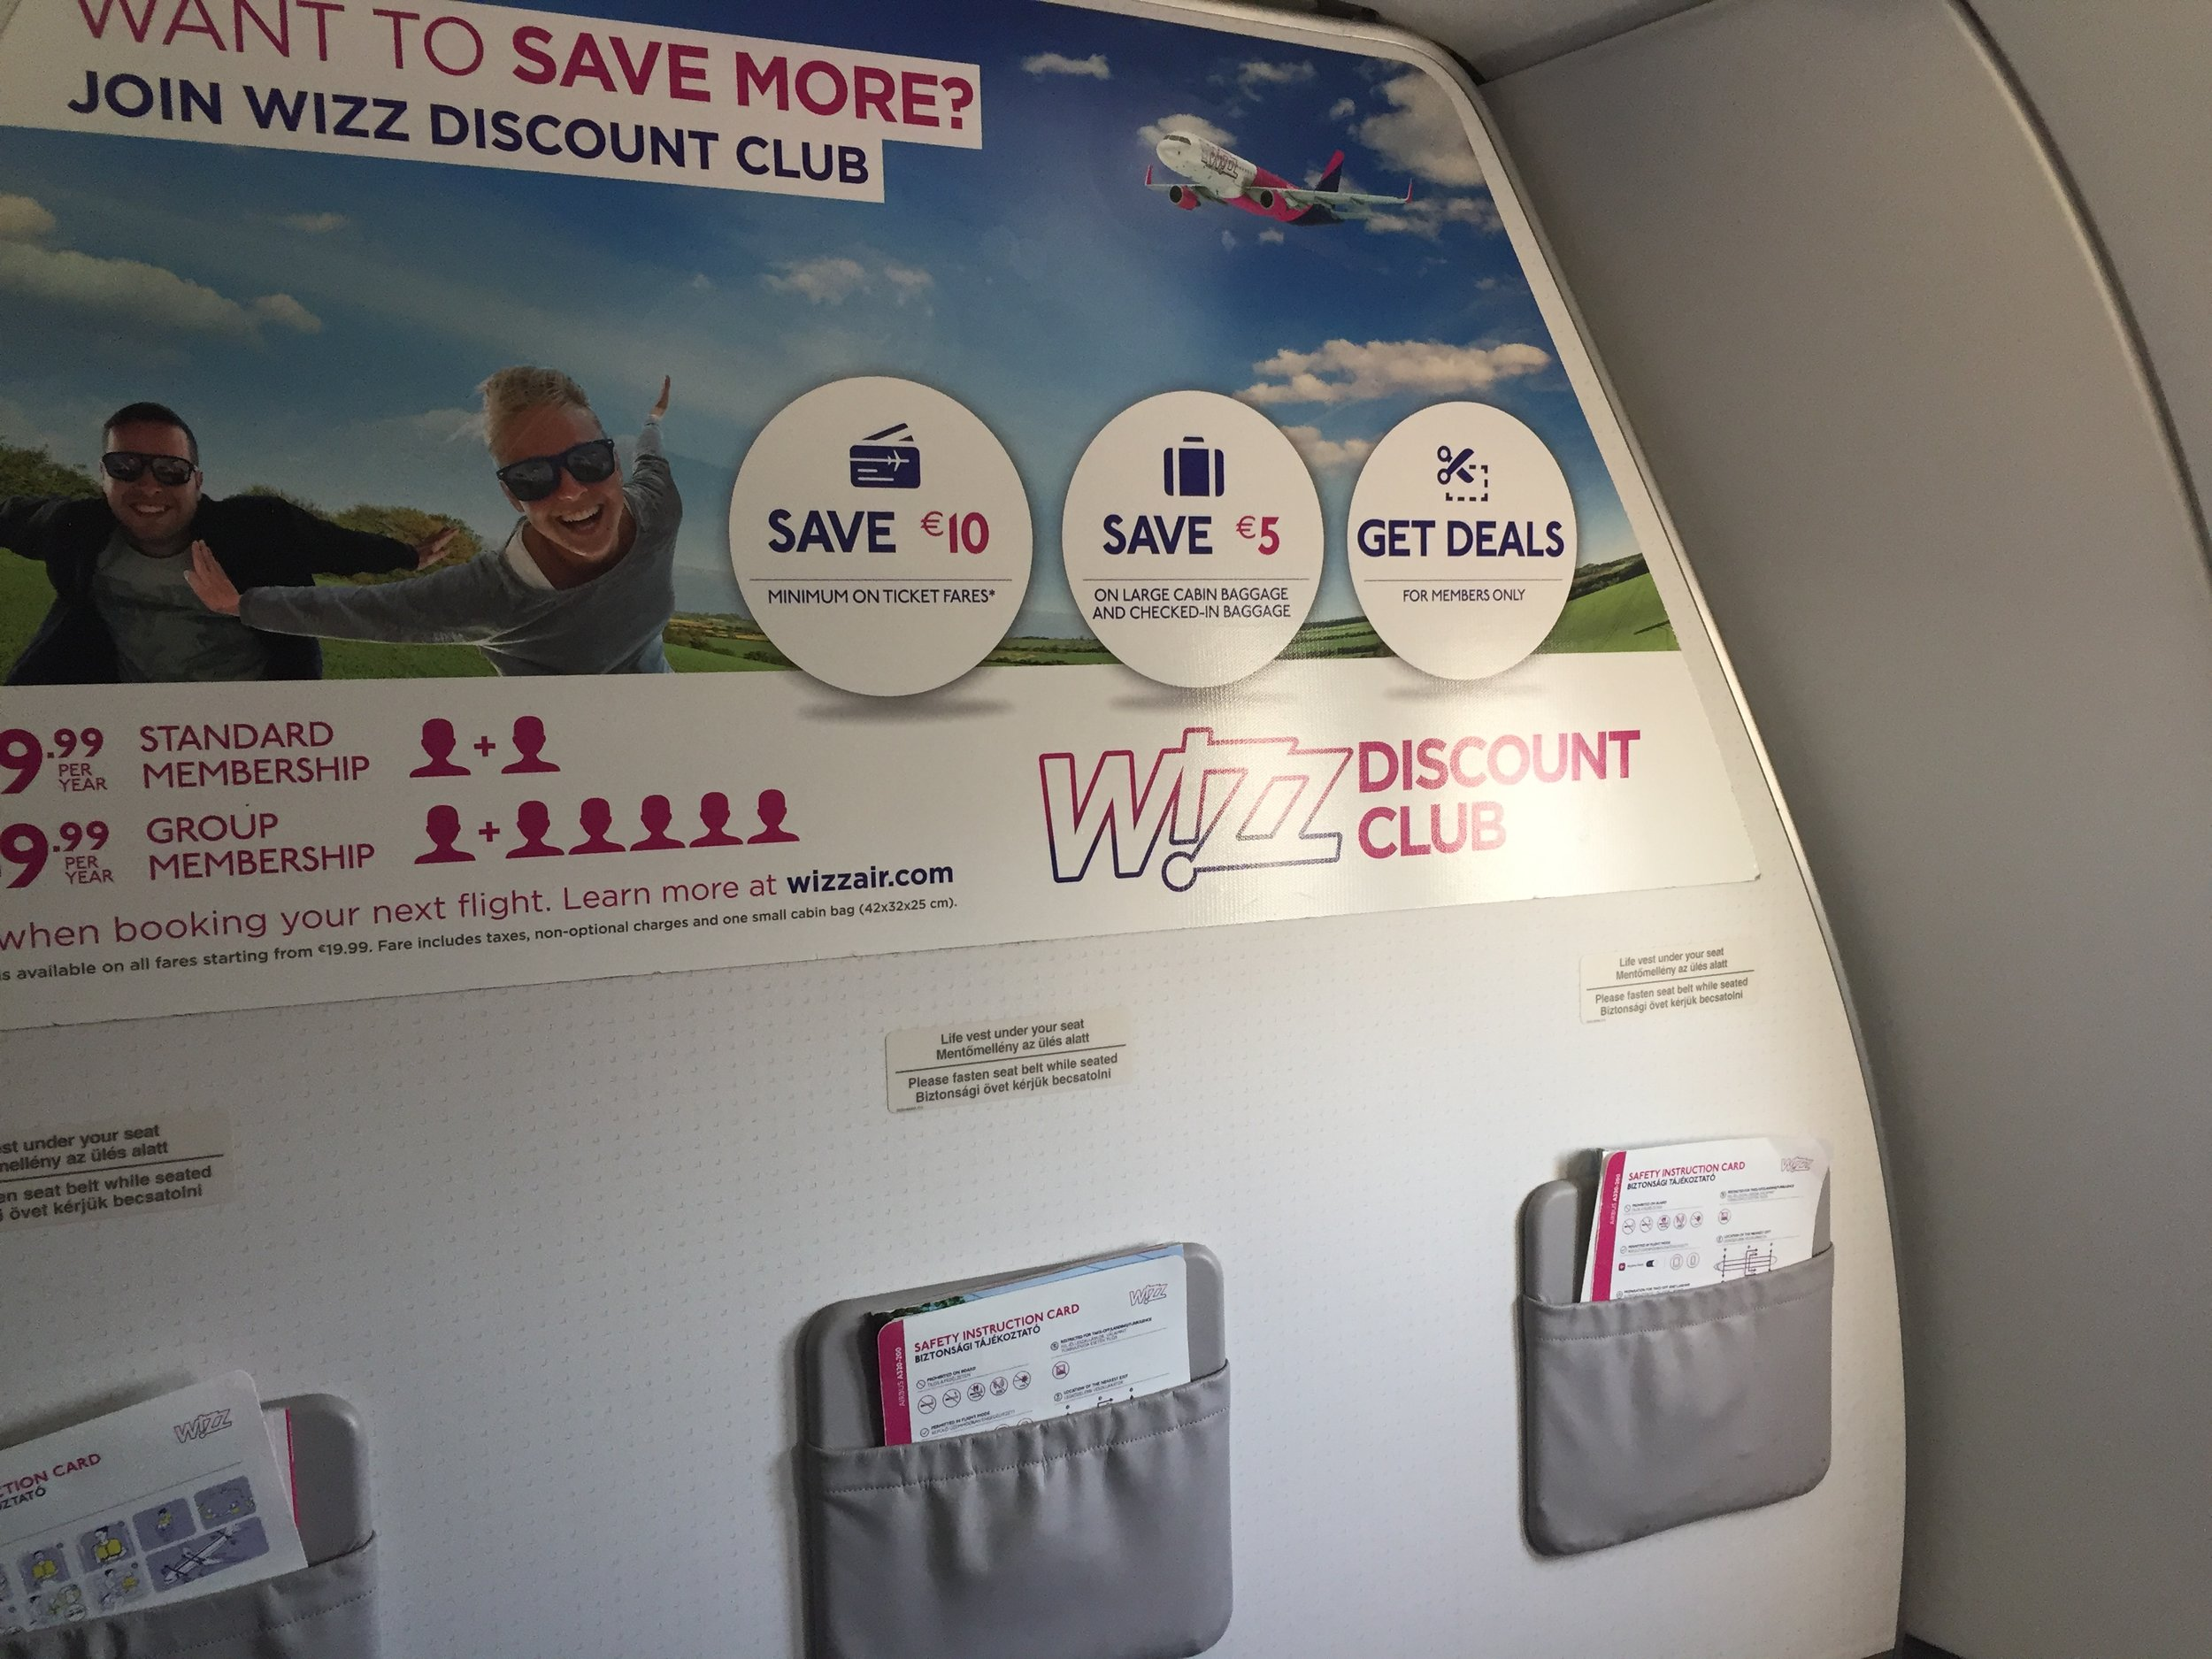 wizz air discount club promo.JPG